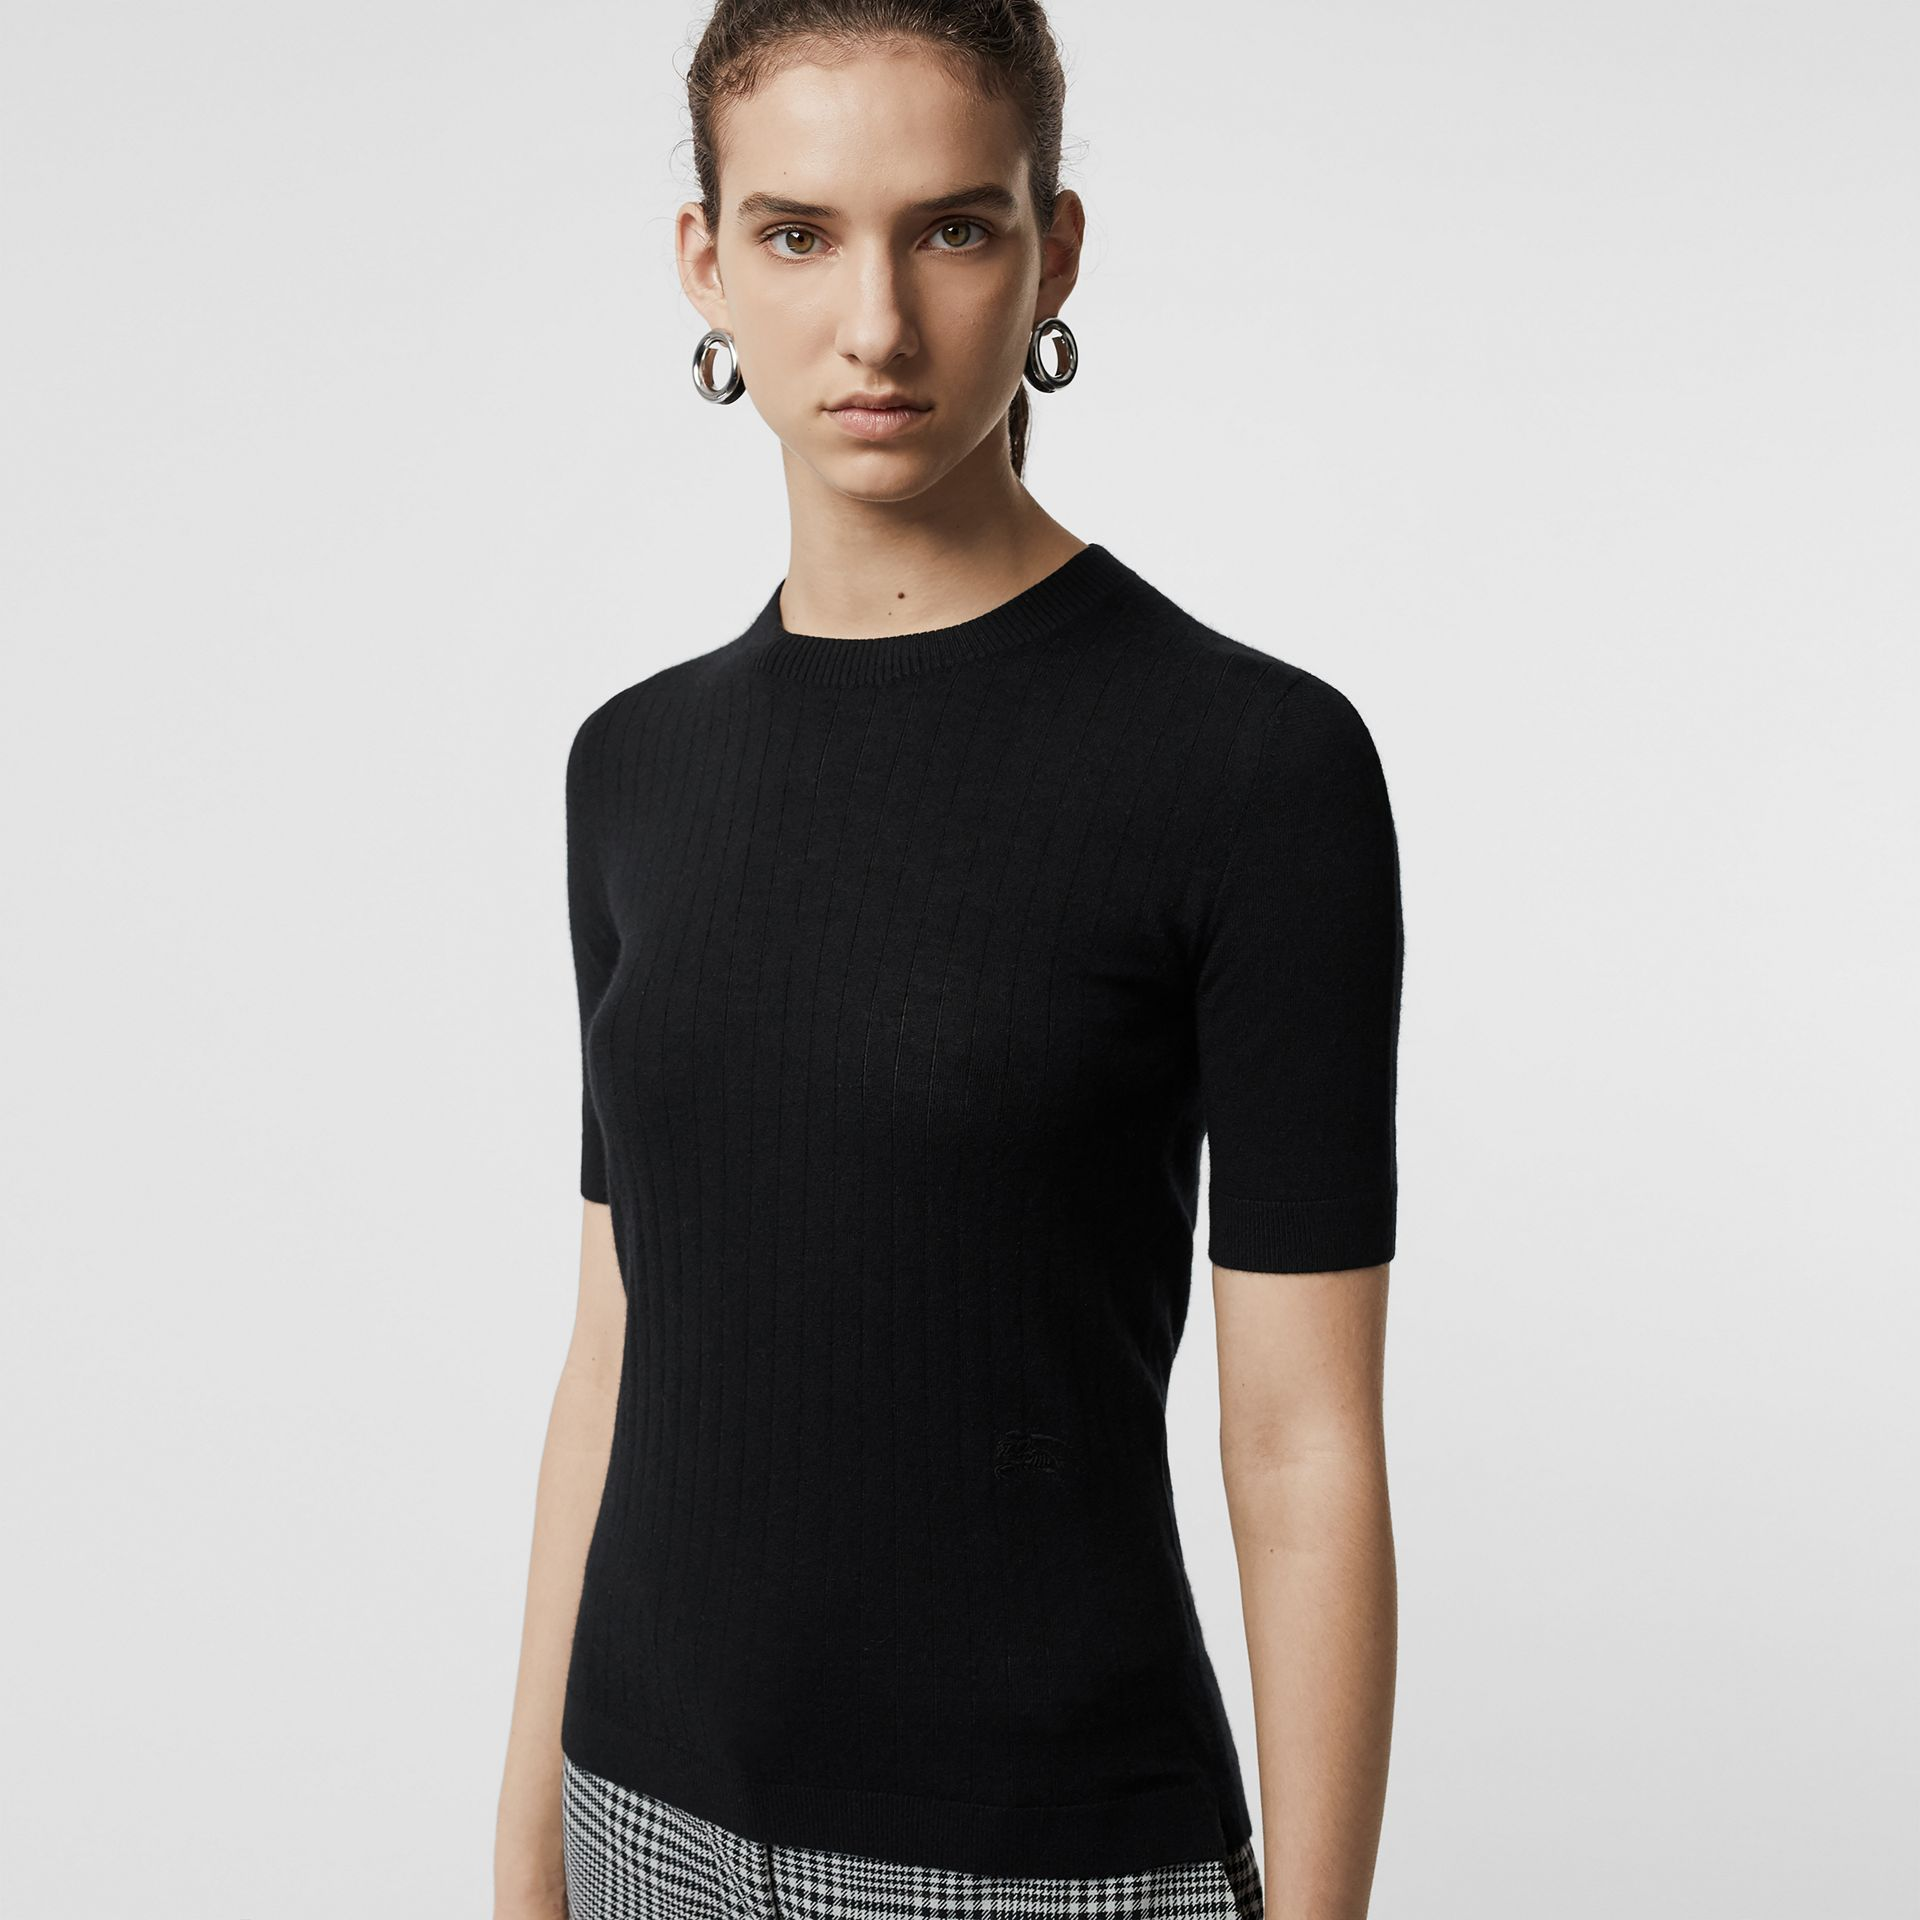 Short-sleeve Rib Knit Cashmere Sweater in Black - Women | Burberry - gallery image 1